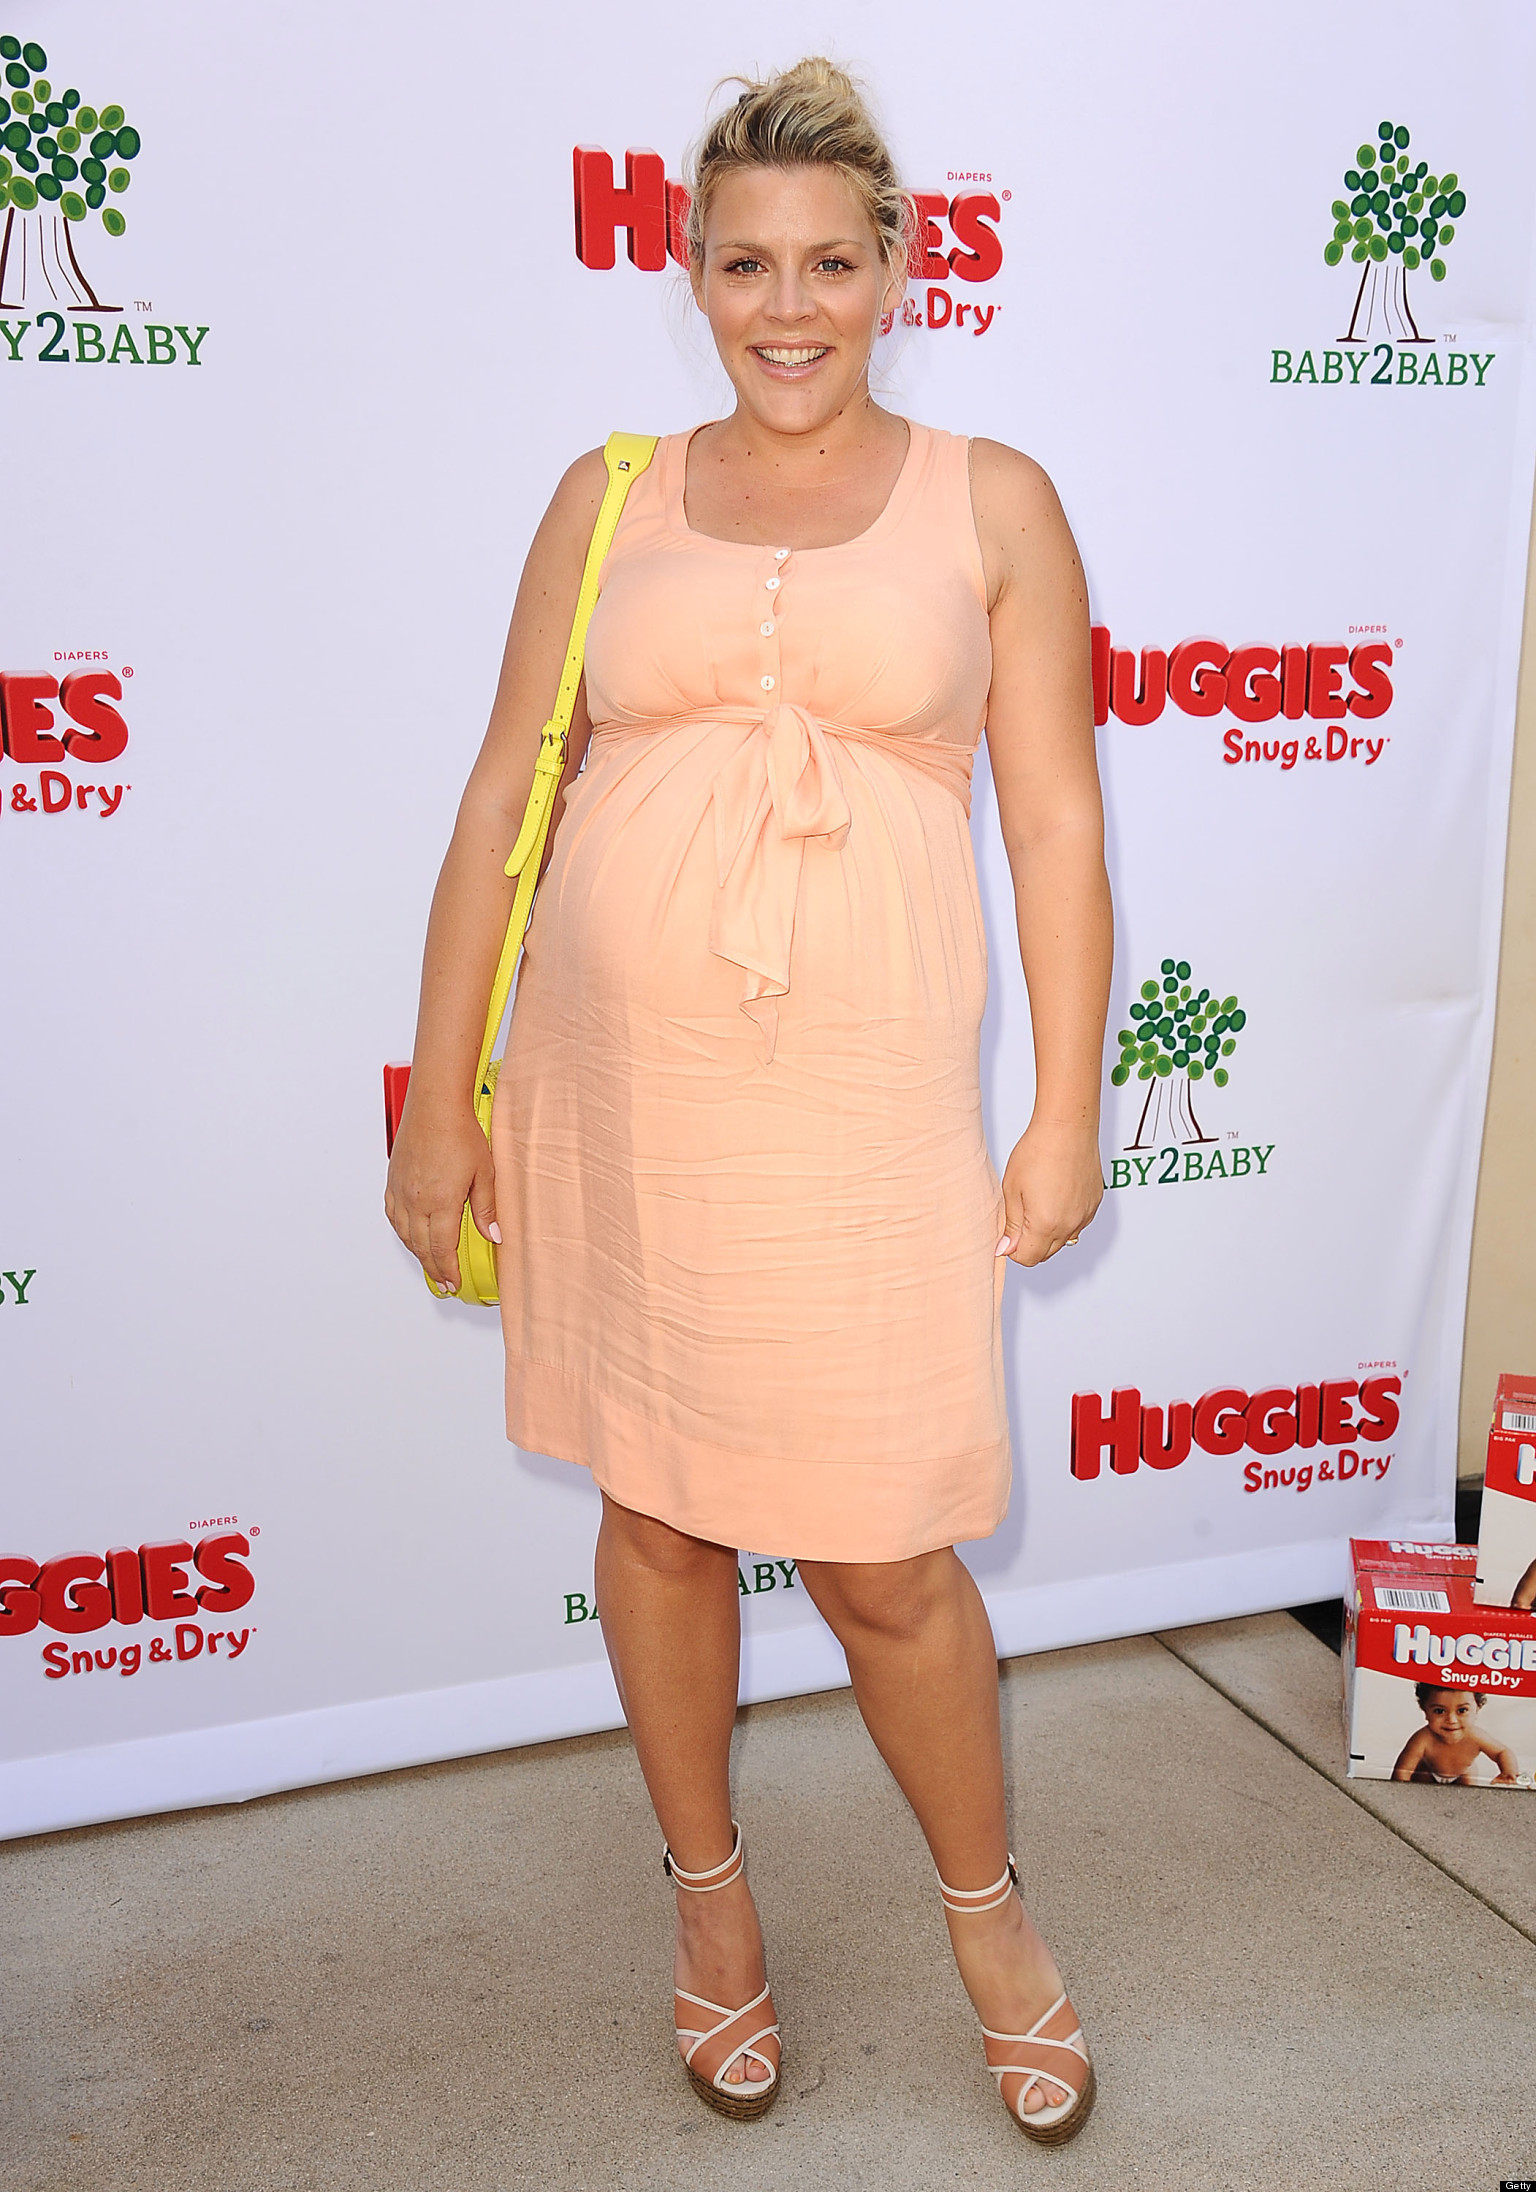 Pregnant Busy Philipps Shares Ultrasound Photo Huffpost